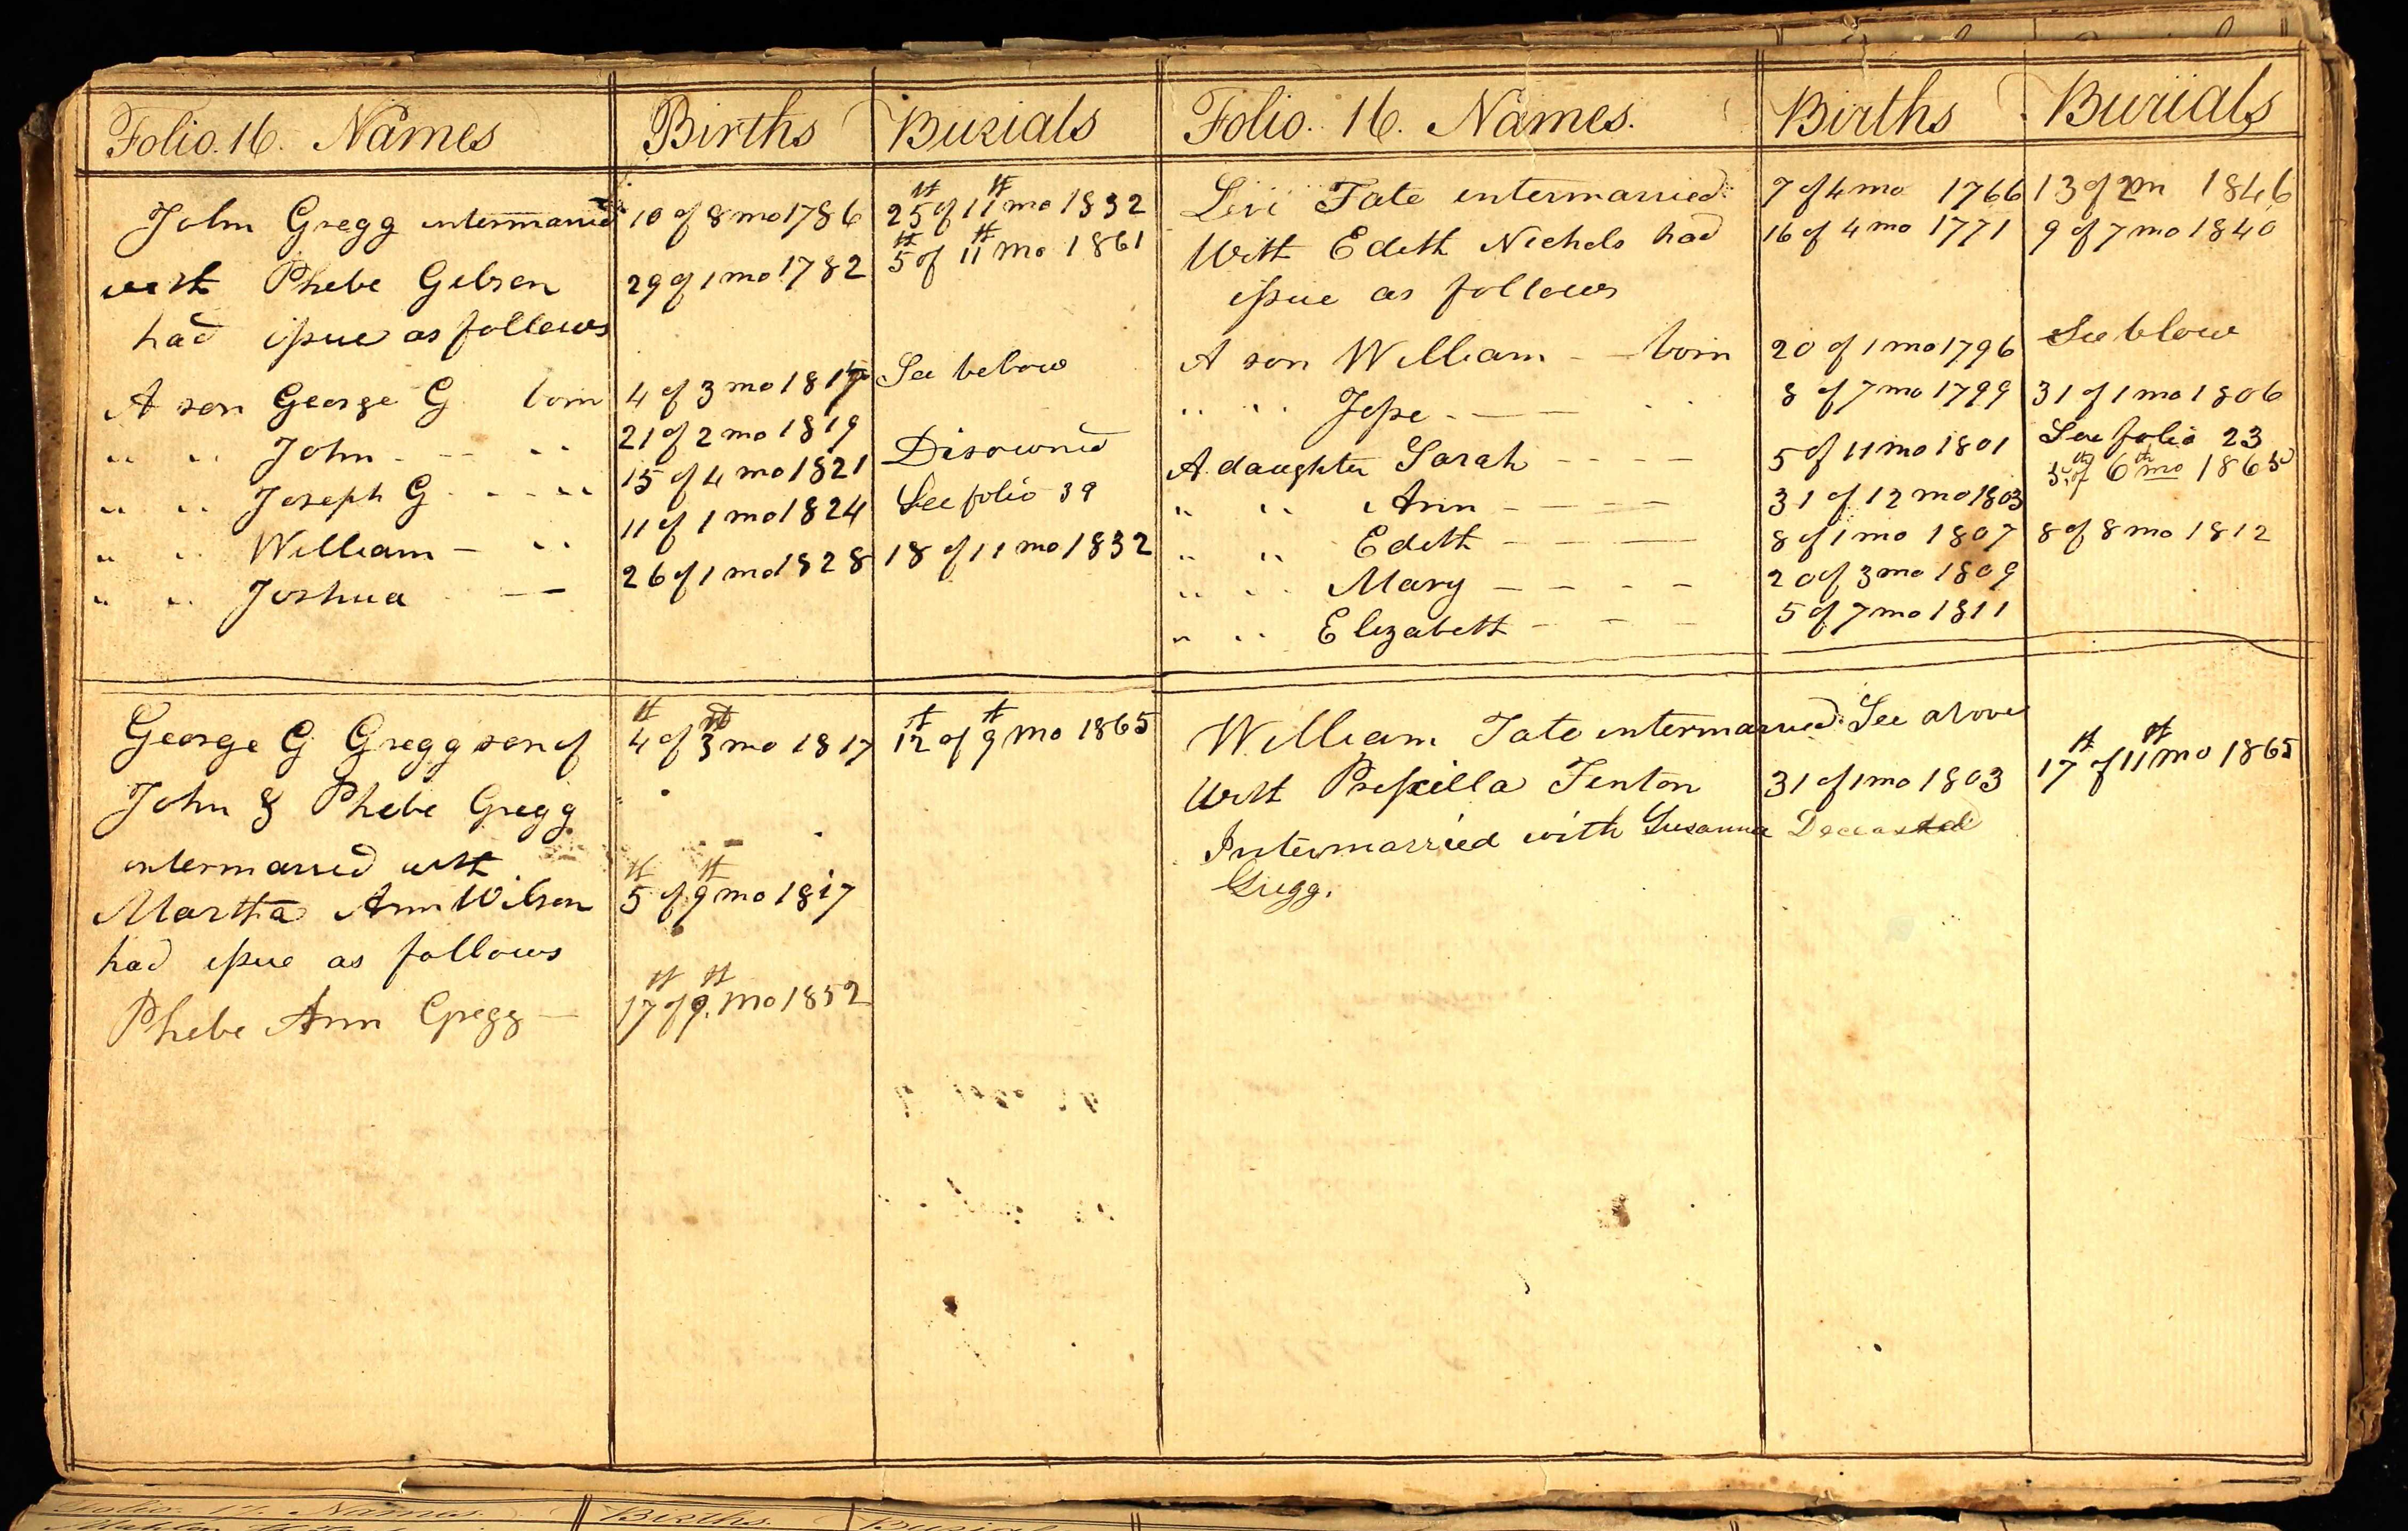 william-tate-and-family-goose-creek-meeting-minutes.jpg